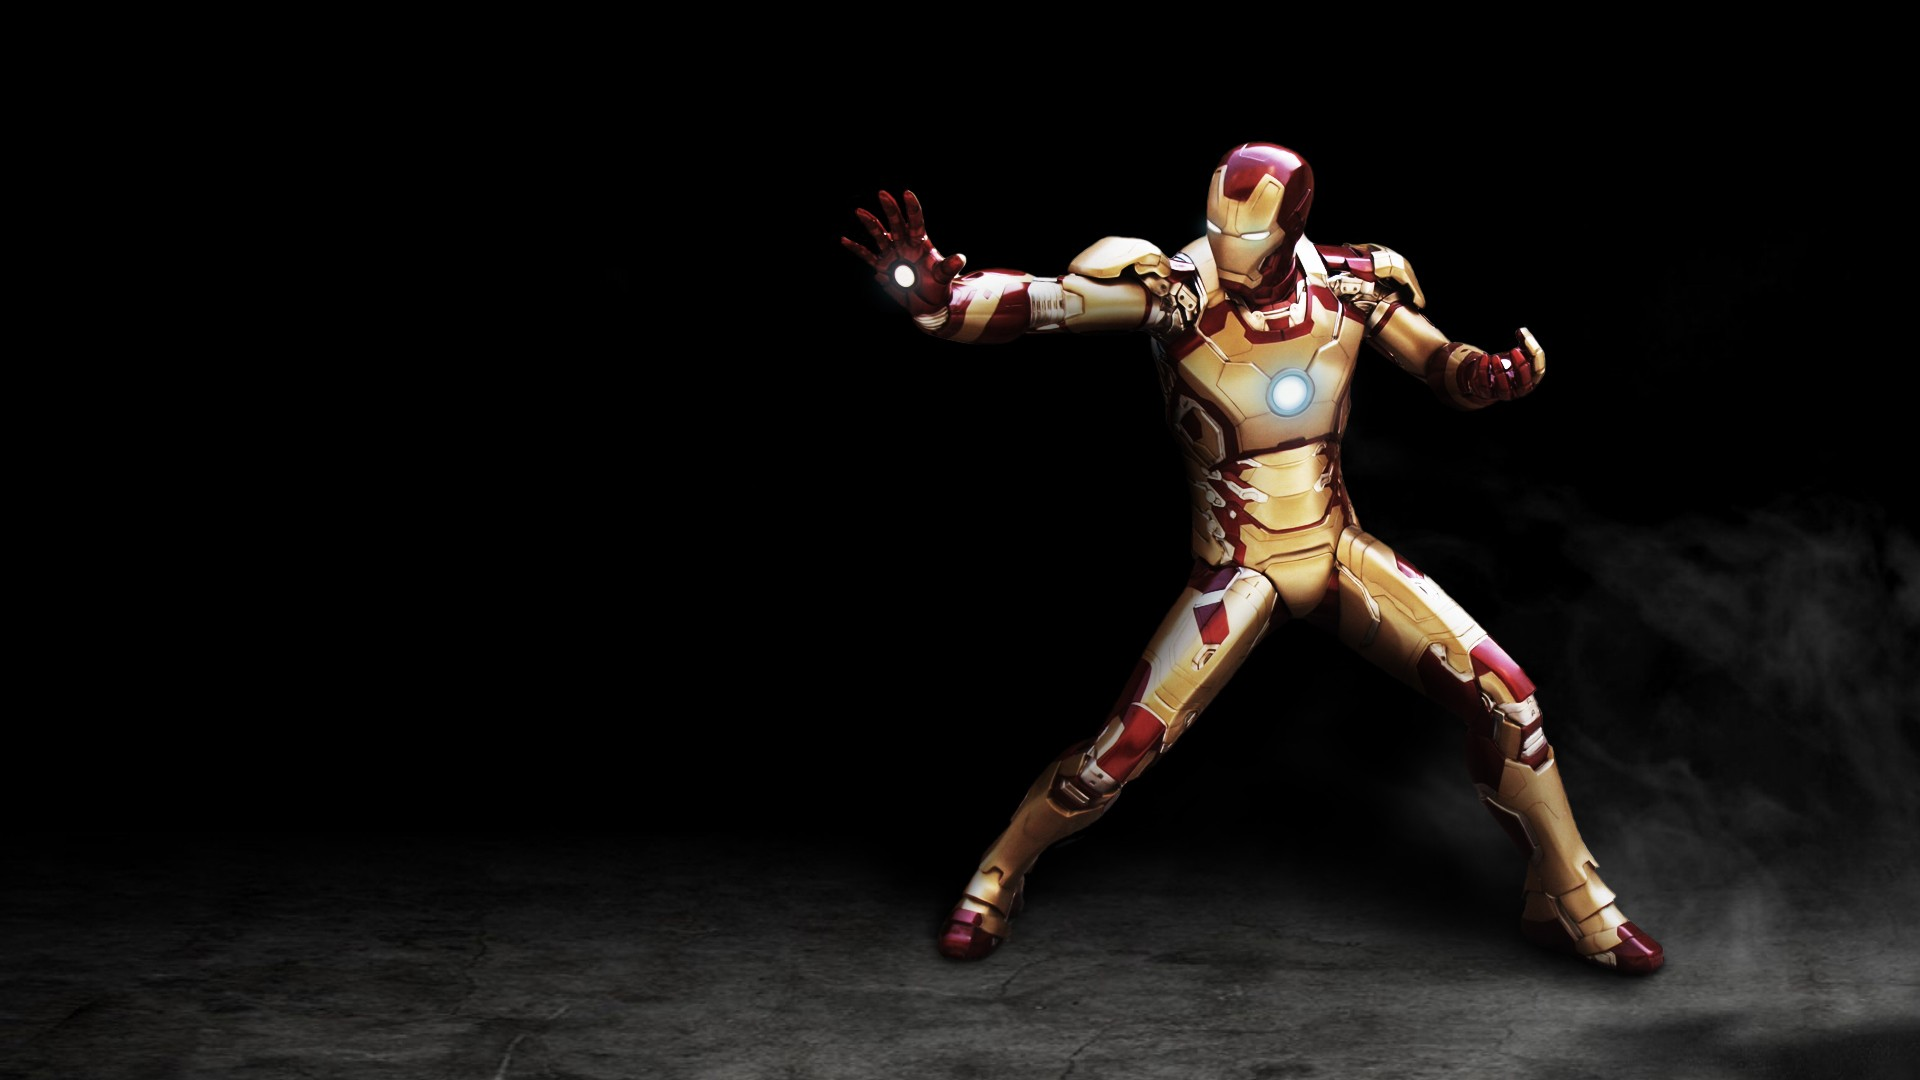 Iron Man Wallpaper 42 1920x1080